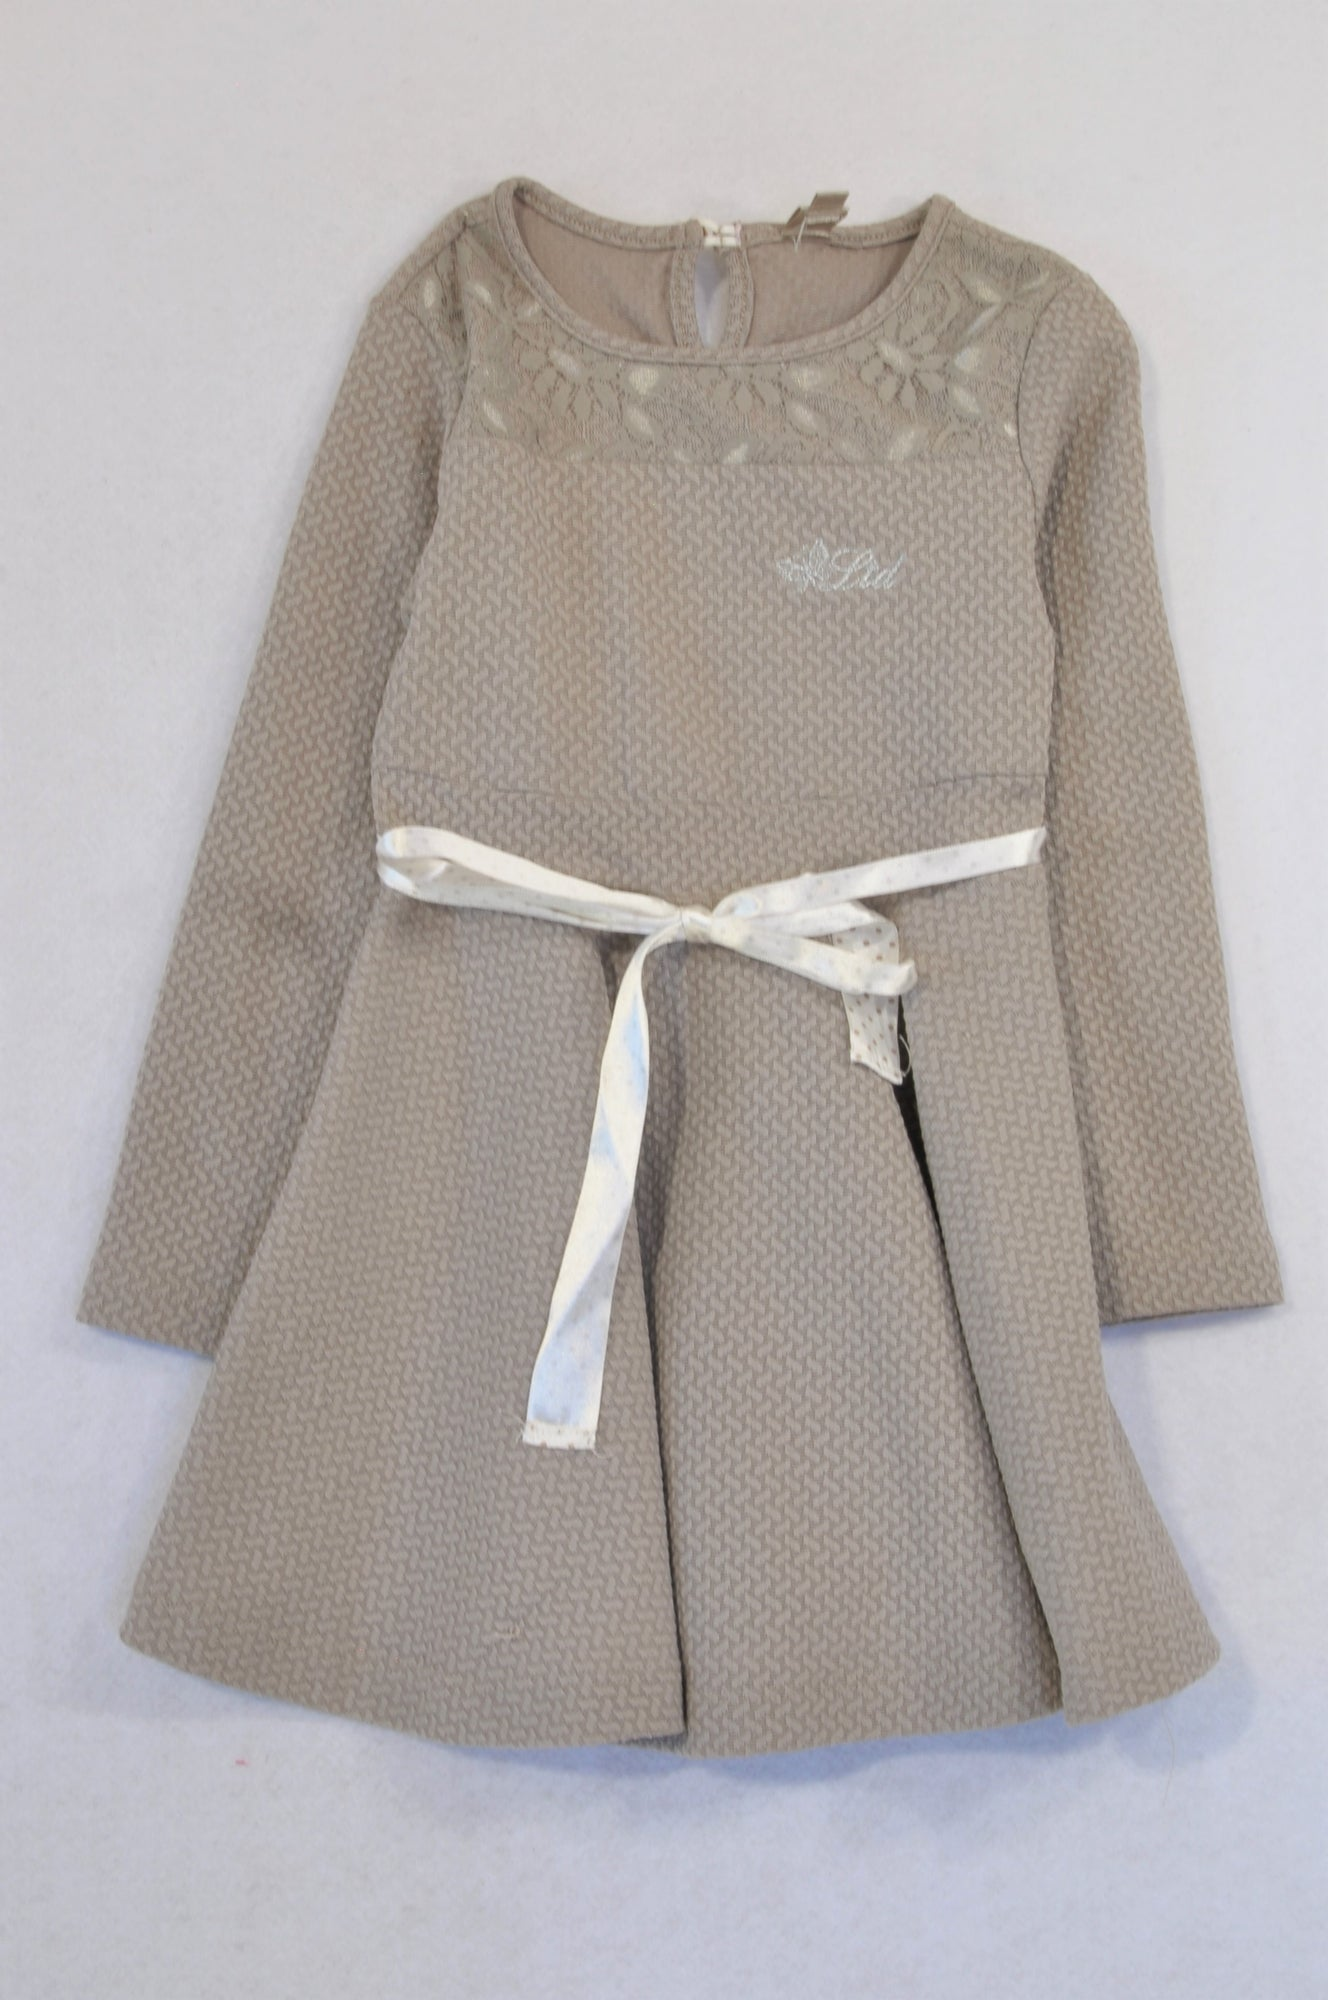 Truworths Brown Textured Lace Neckline Tie Dress Girls 5-6 years